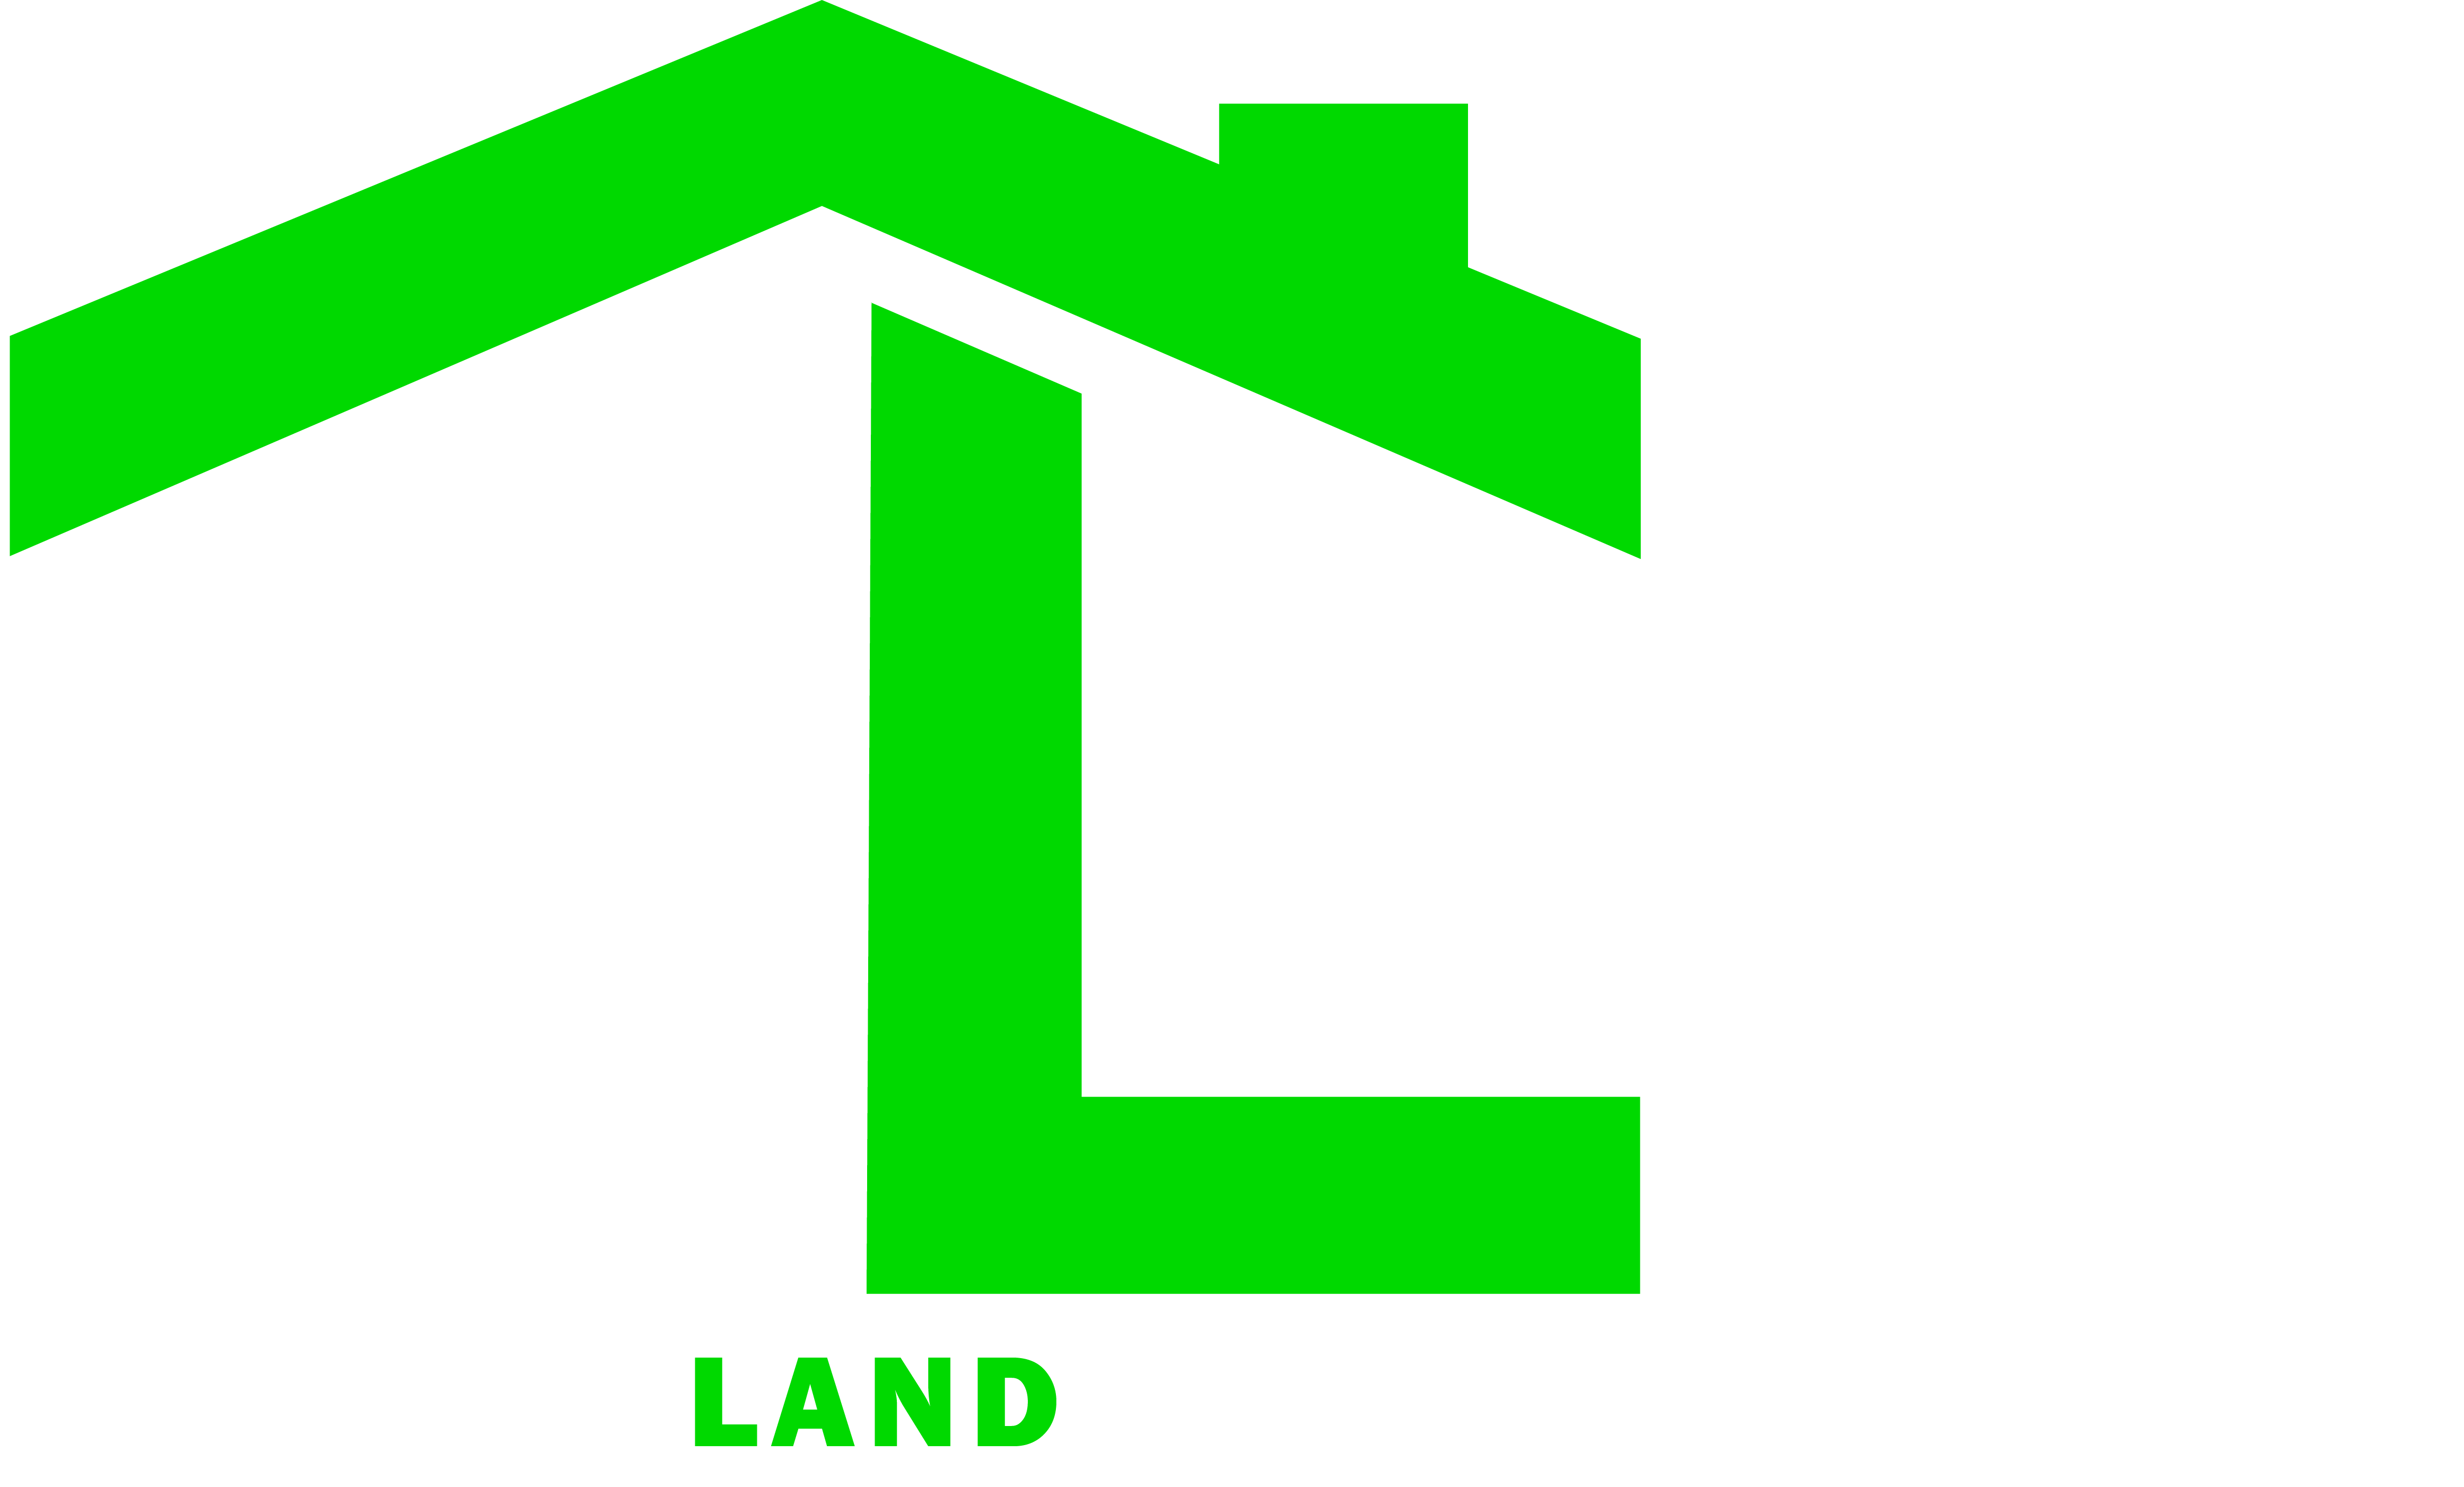 House Land Packages Realty